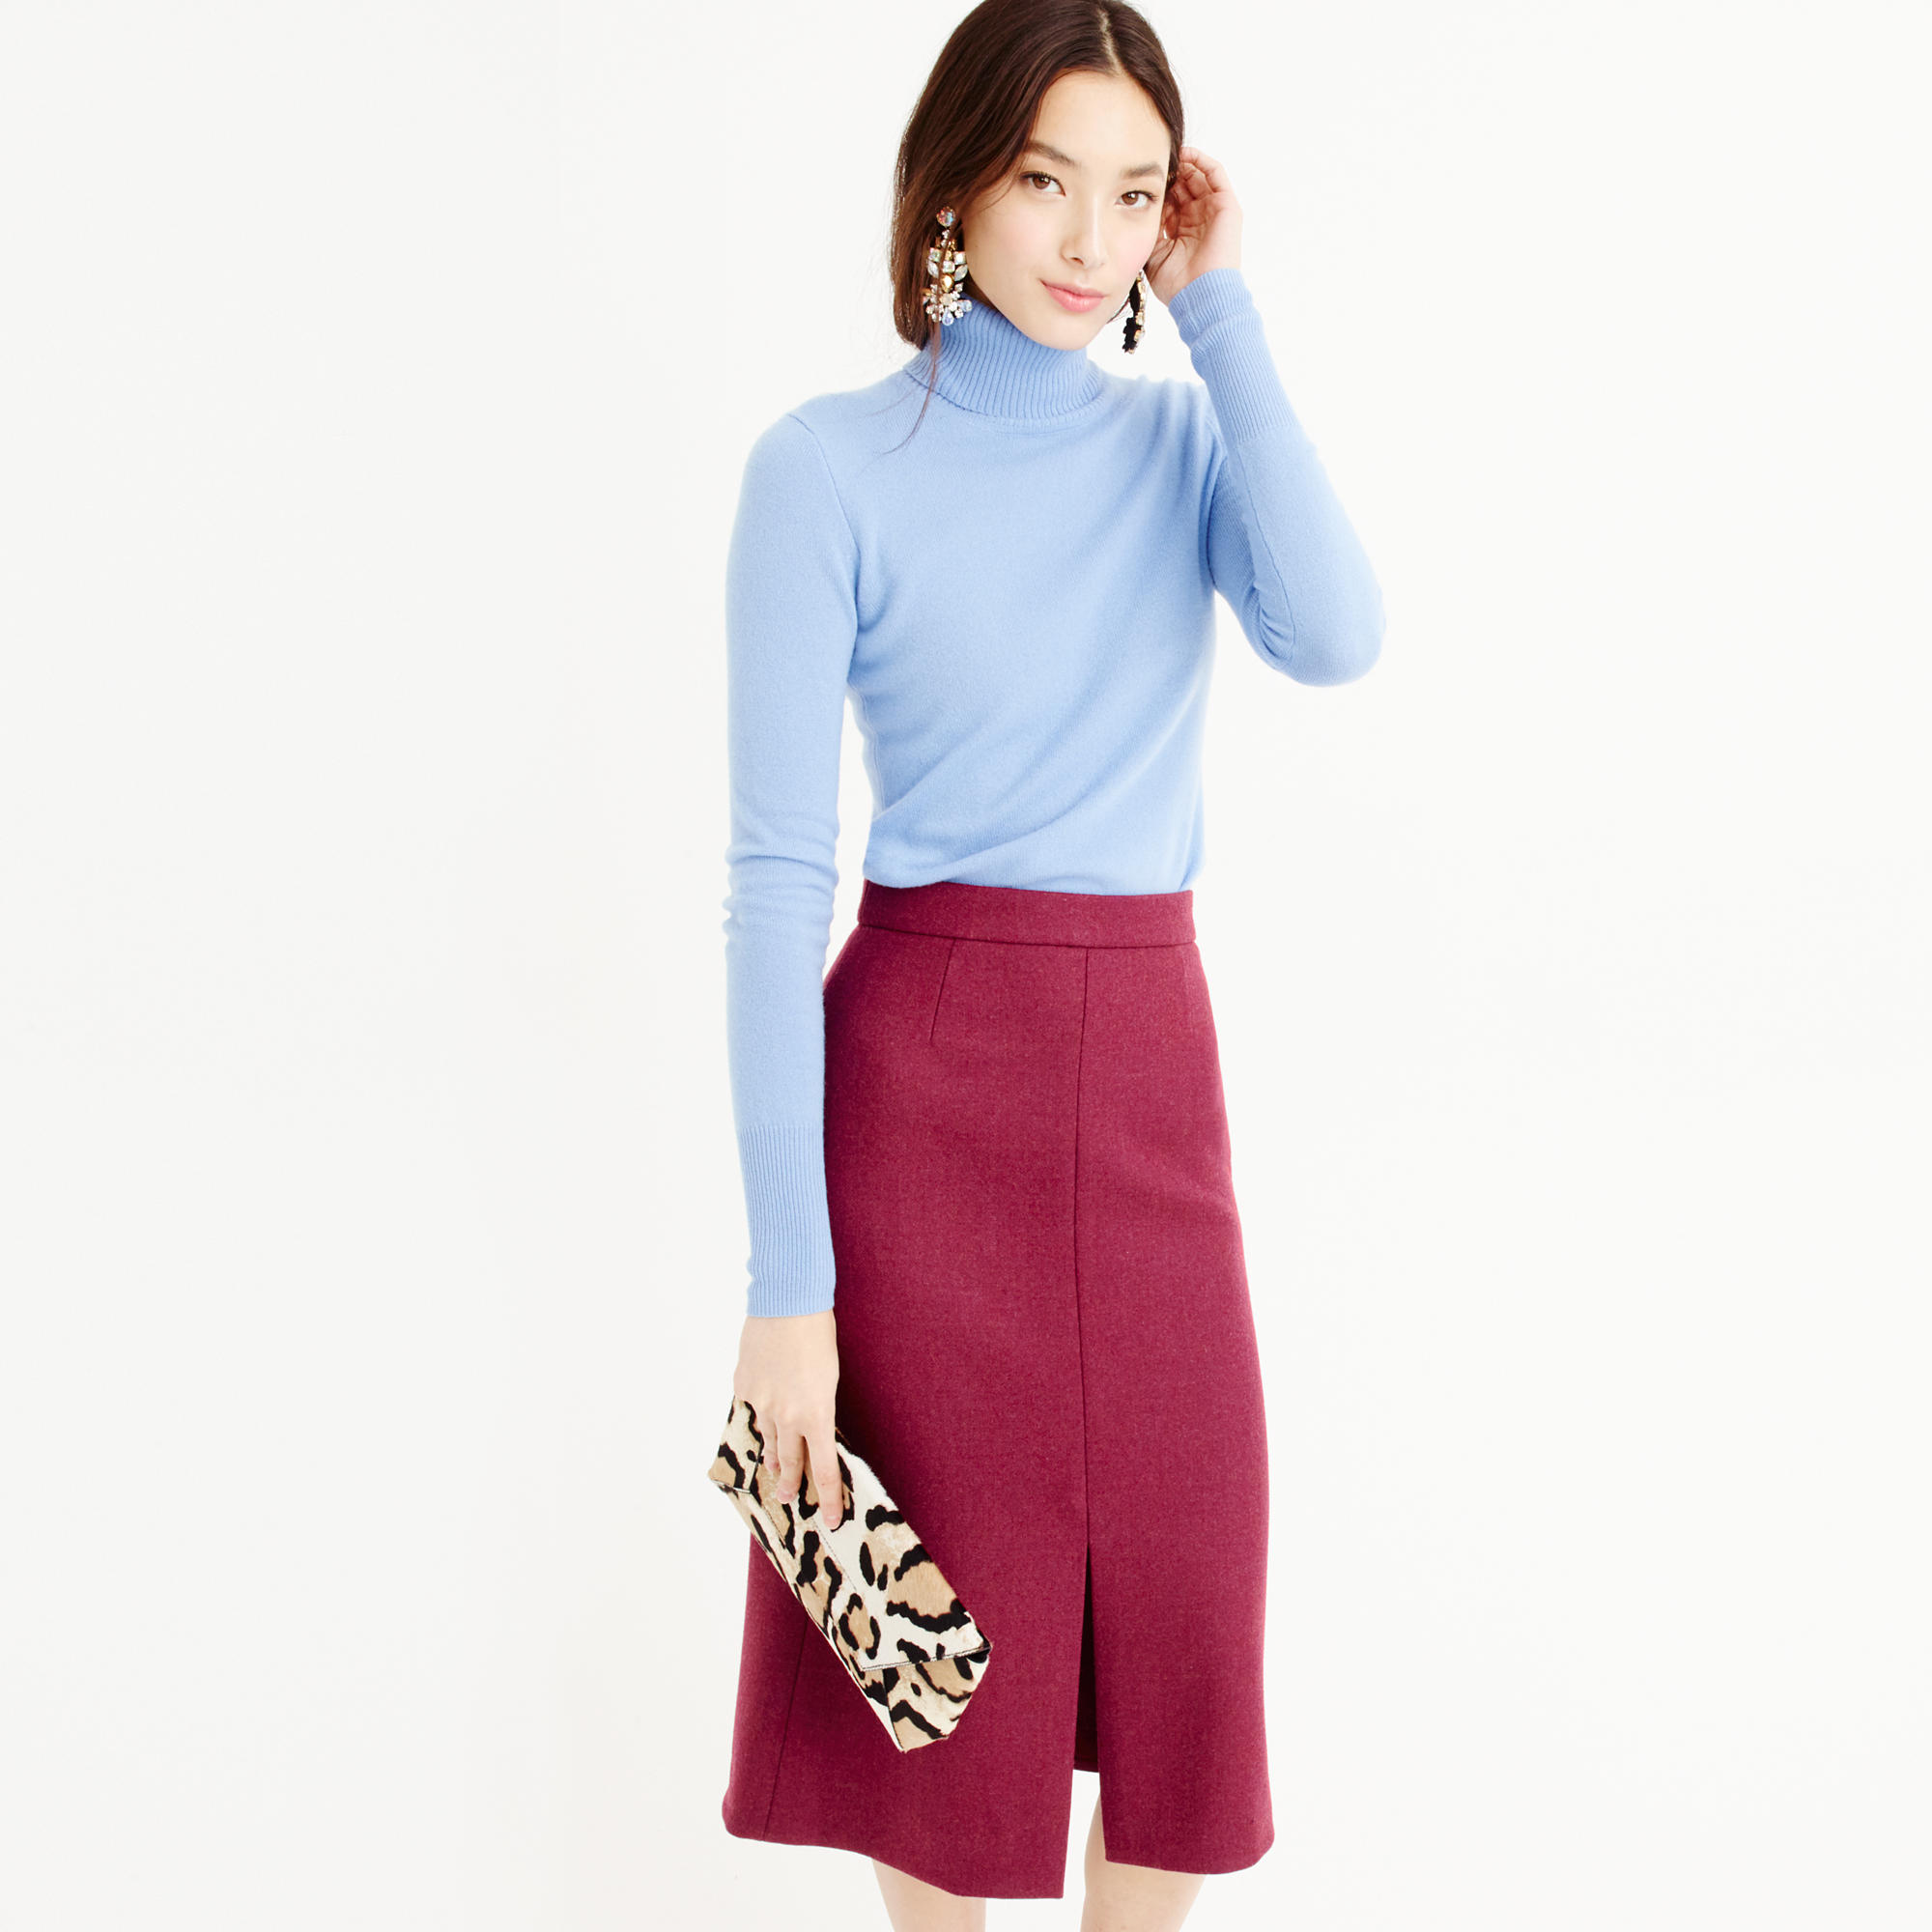 A-line midi skirt in double-serge wool : Women A-line/Midi | J.Crew